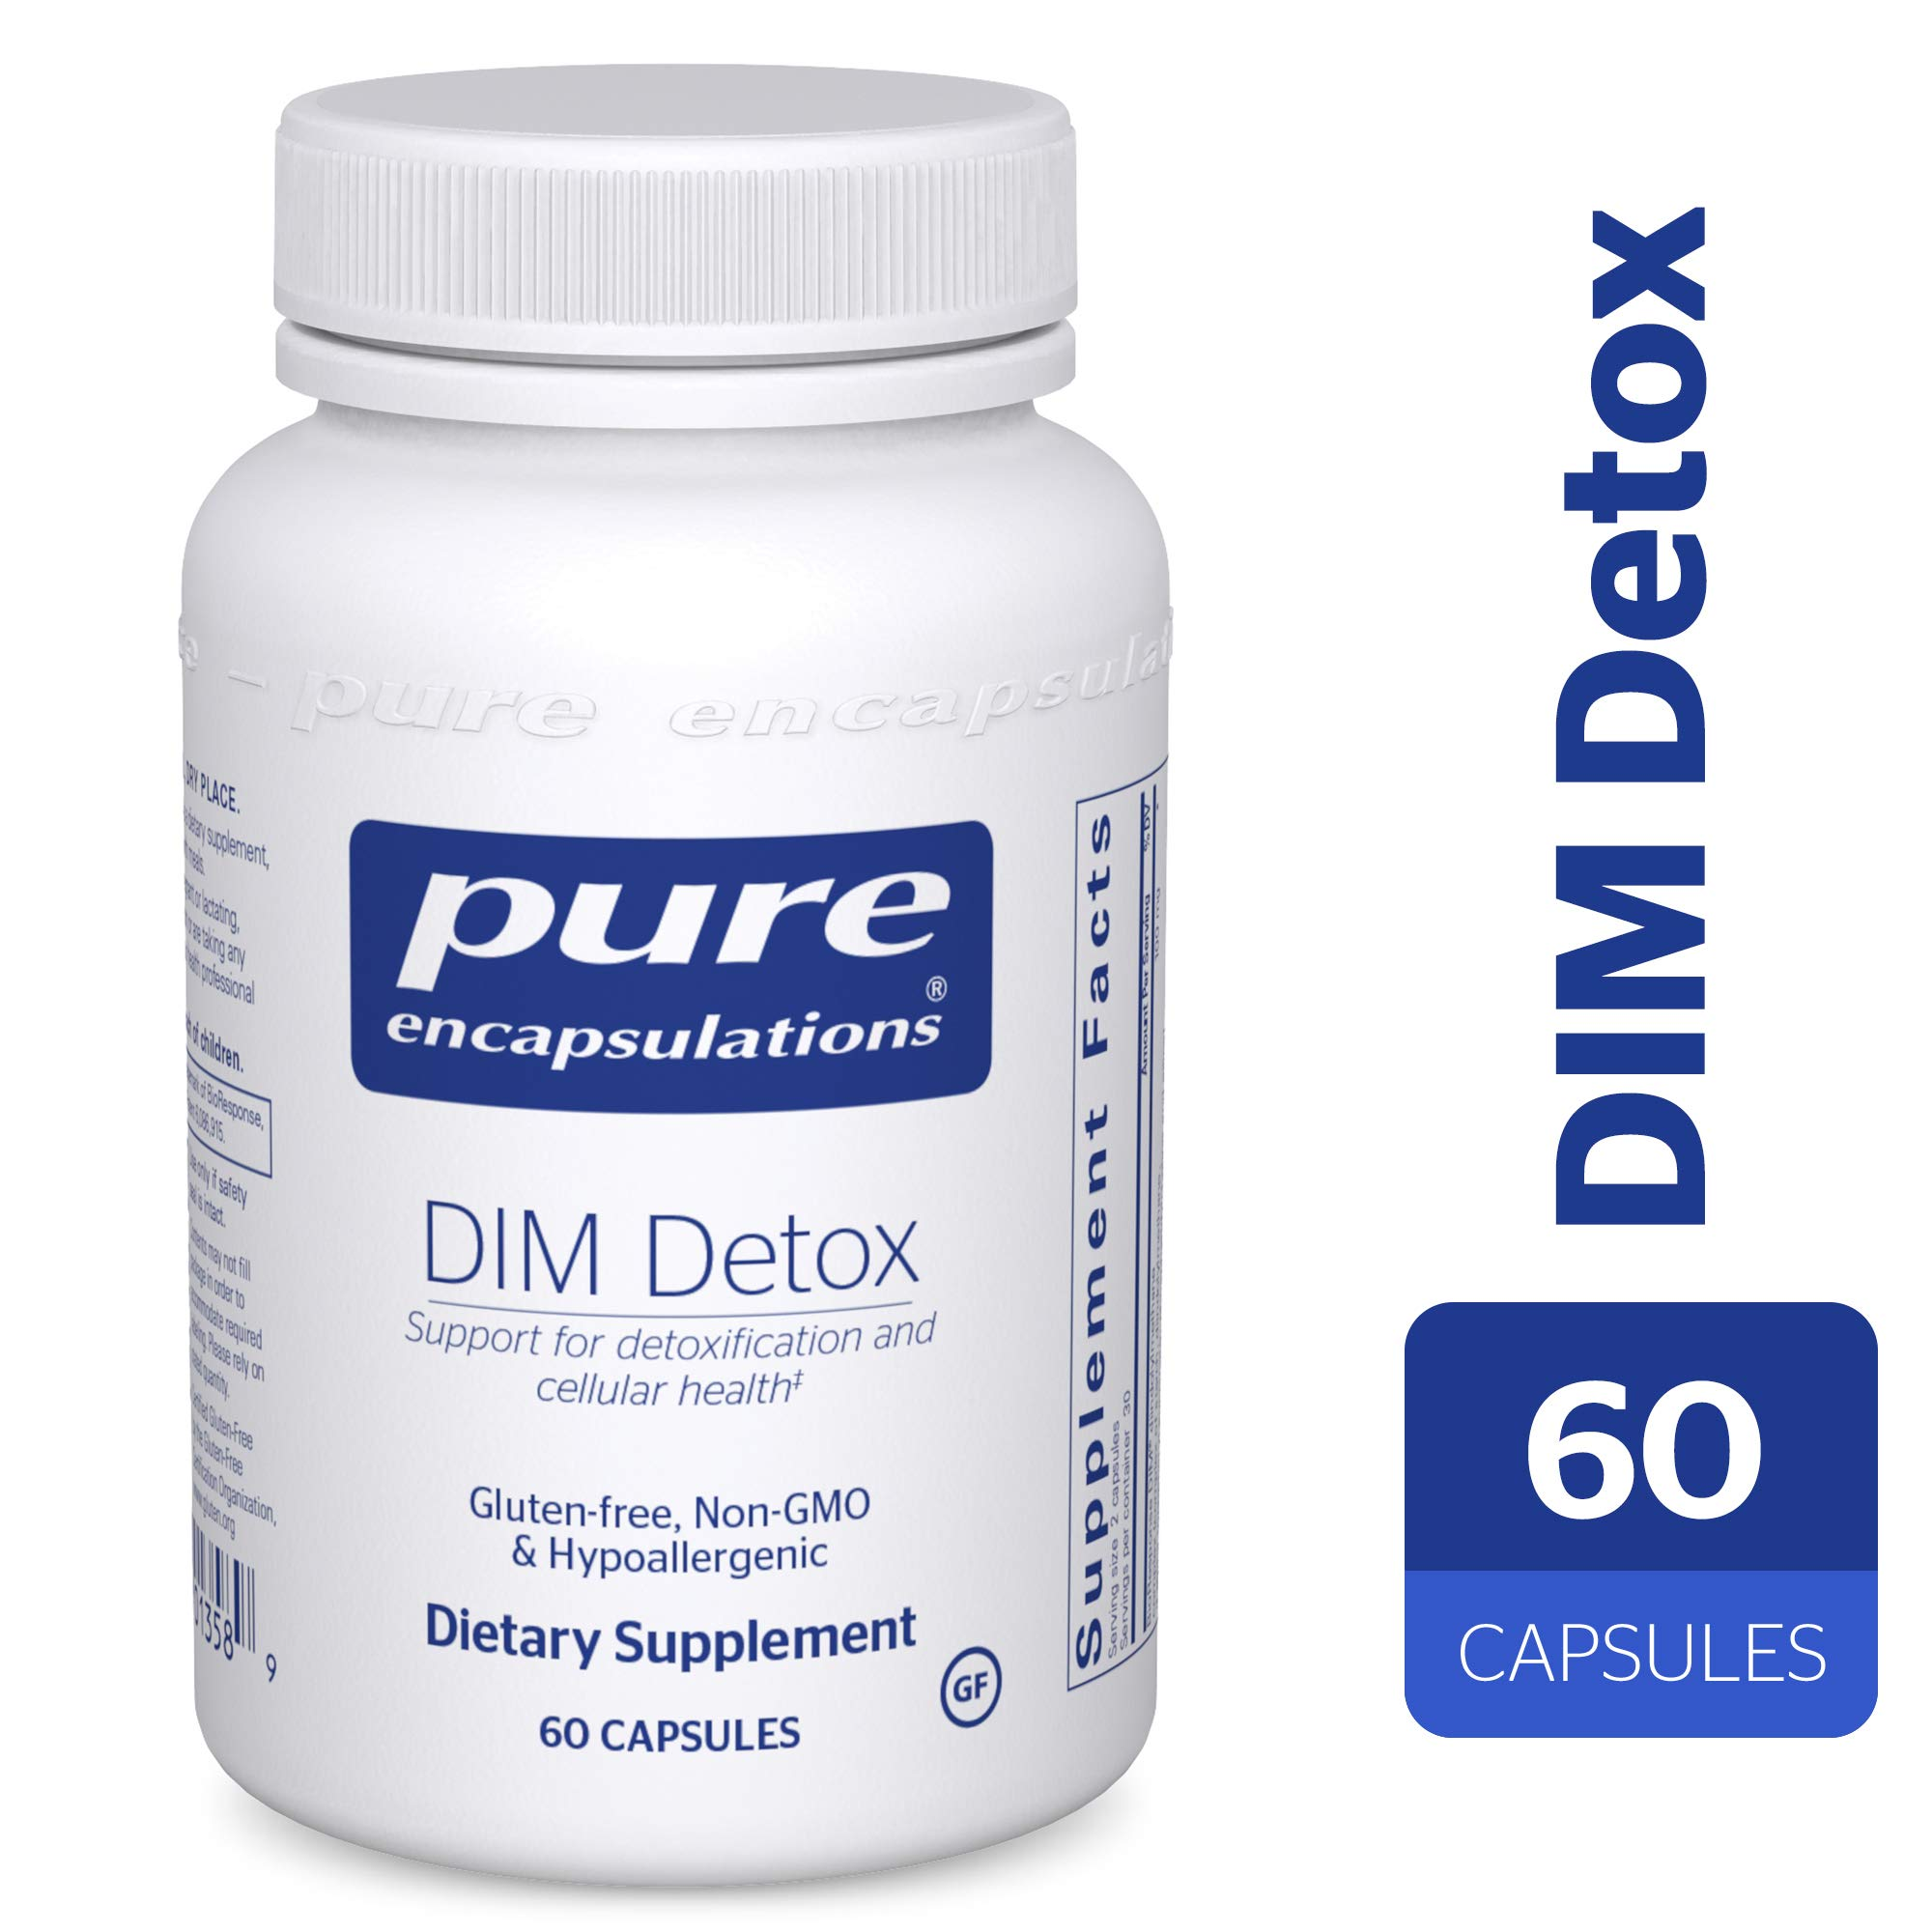 Pure Encapsulations - DIM Detox - Supplement Support for Detoxification and Cellular Health* - 60 Capsules